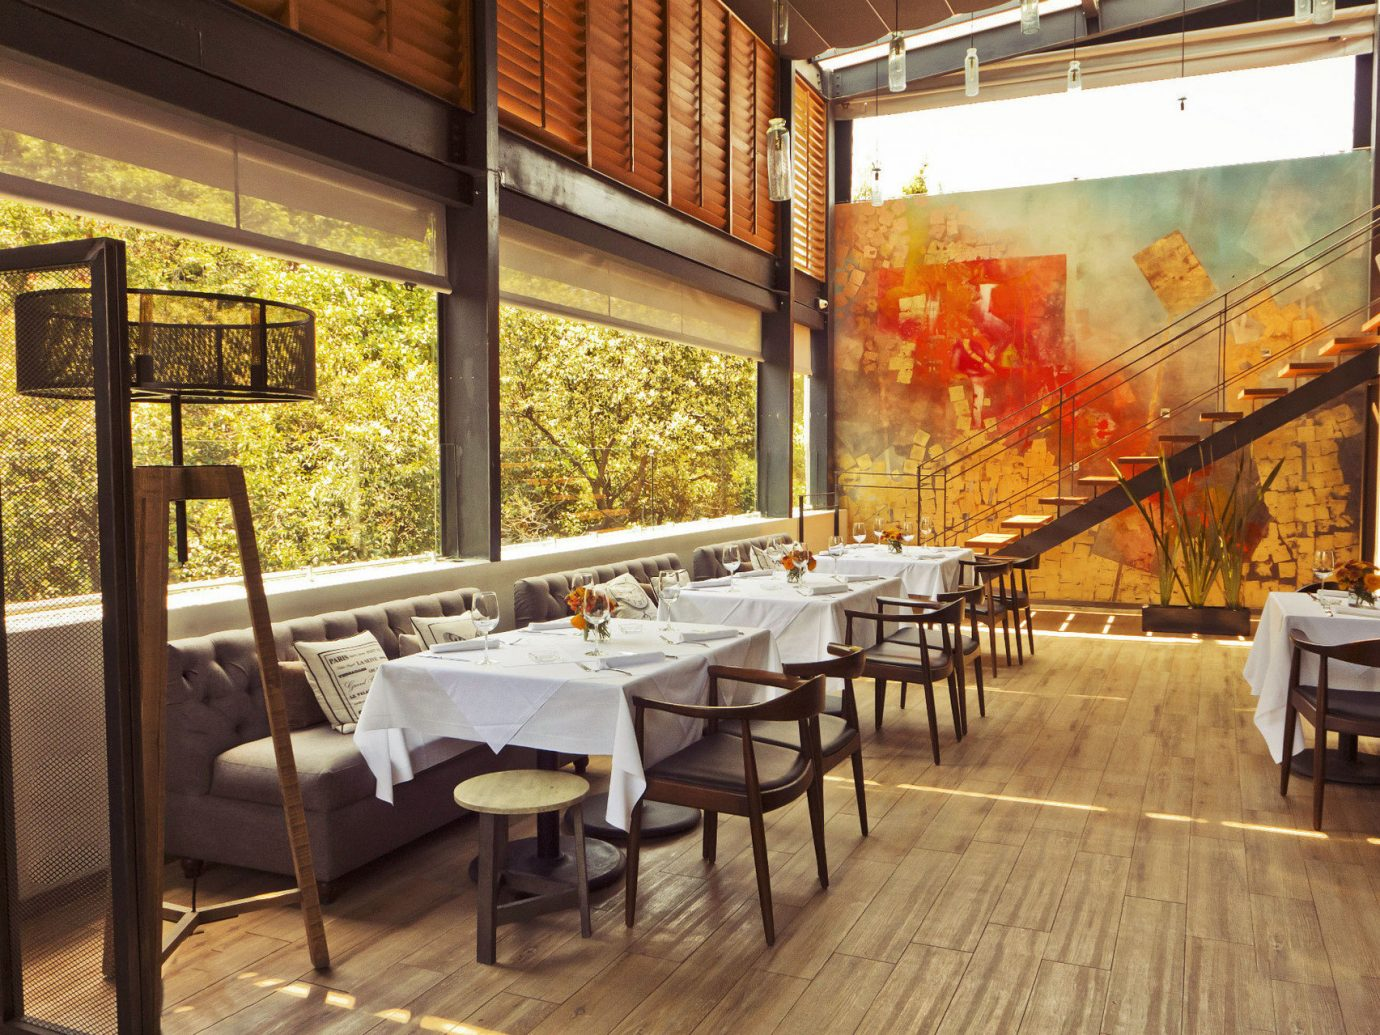 art artistic artsy Dining Elegant fine dining Greenery Hip Hotels Luxury regal restaurant sophisticated trendy view windows floor indoor interior design café meal estate real estate